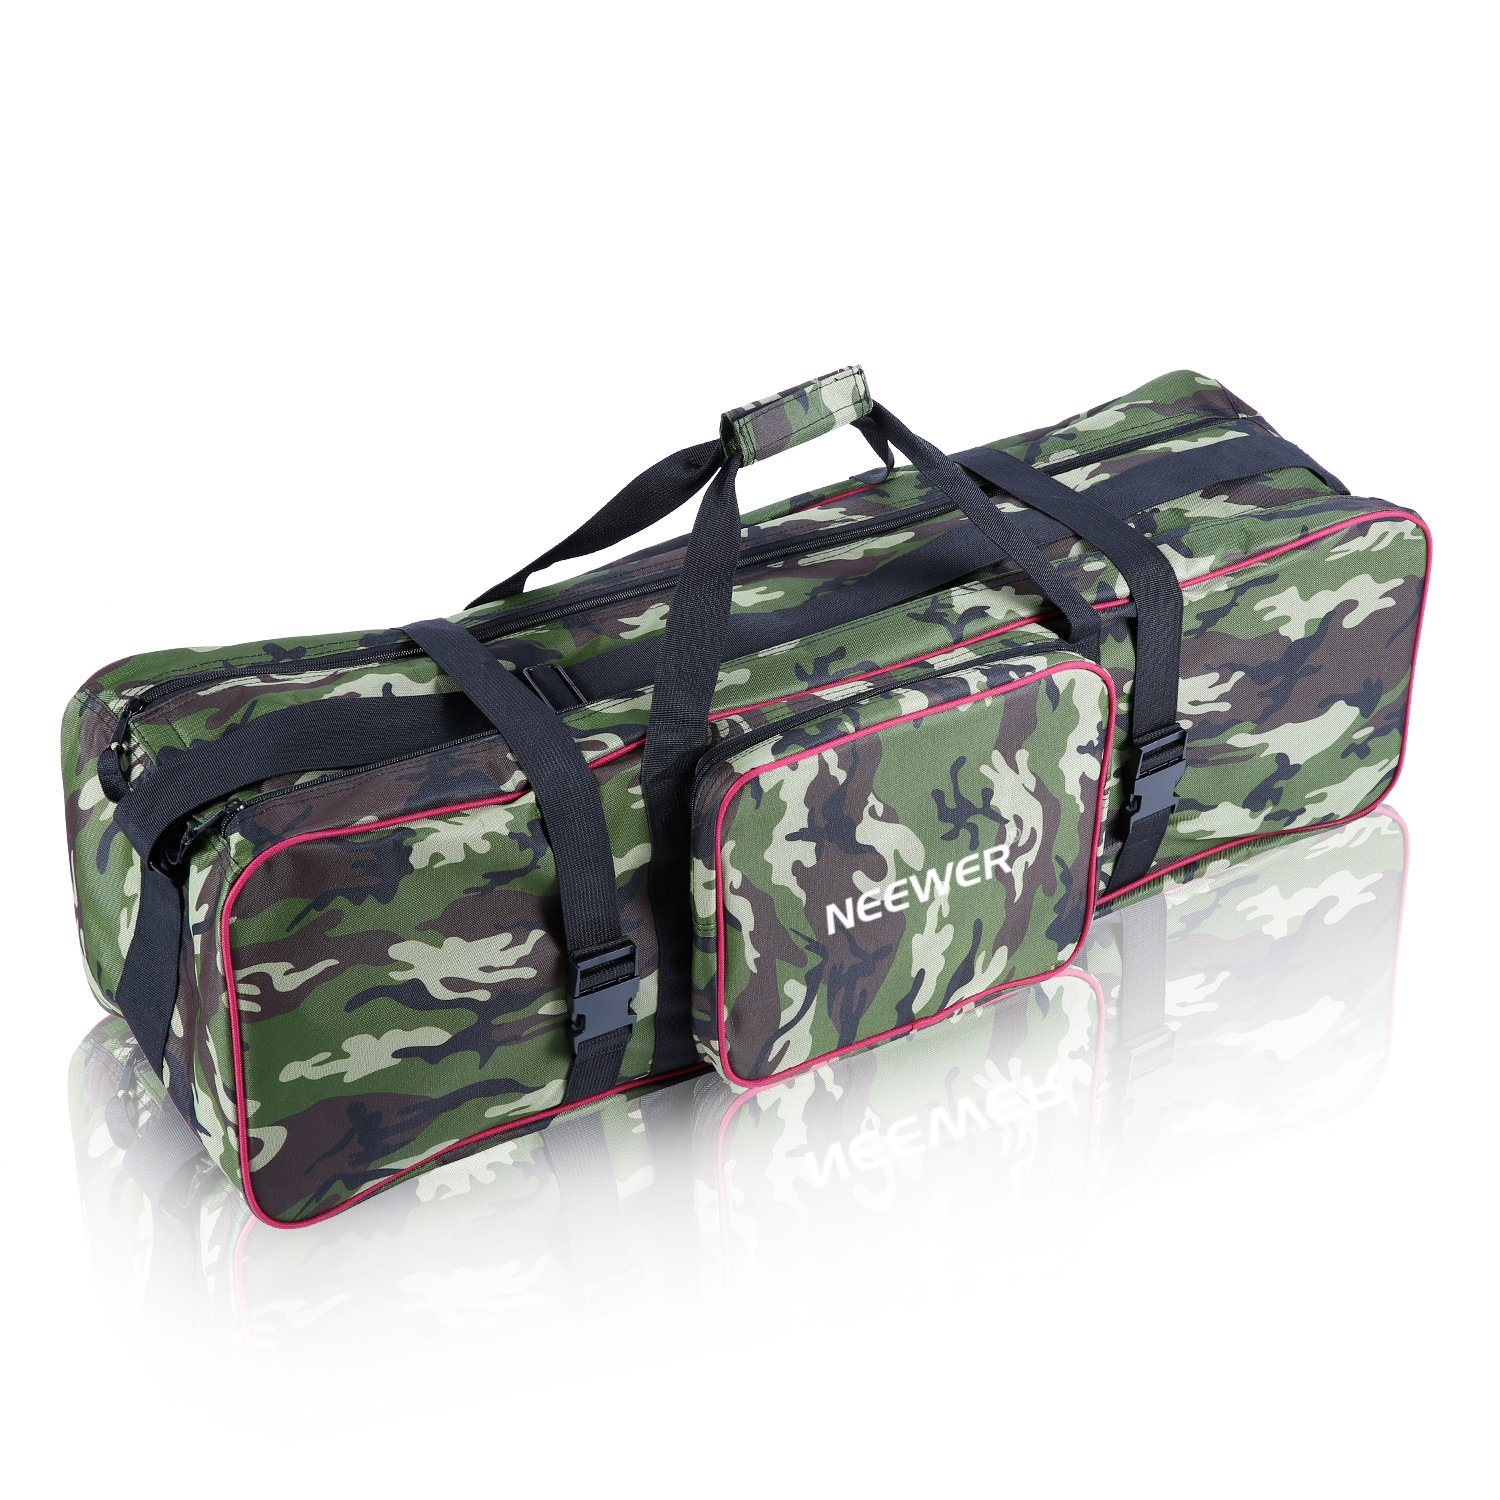 Neewer 25''x10''x10''/70x 25 x 25 cm Photo Studio Equipment Large Carrying Bag with Strap for Tripod Light Stand and Photography Lighting Kit(Camouflage)